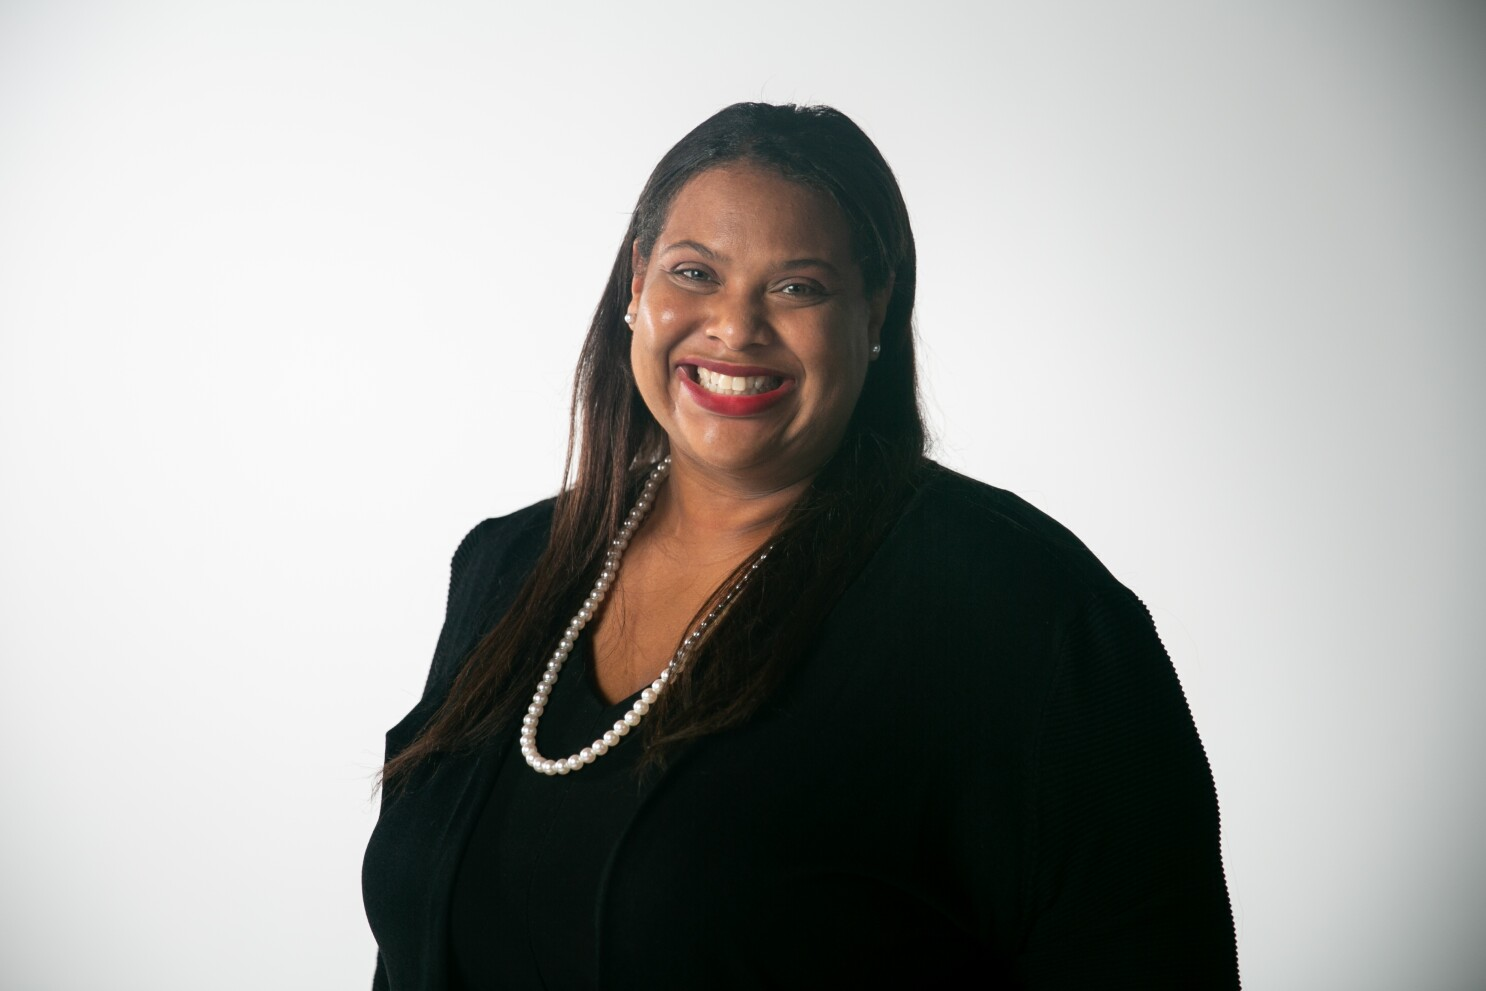 Q&A: Meet Kenya Taylor, candidate for San Diego County Supervisor District 2